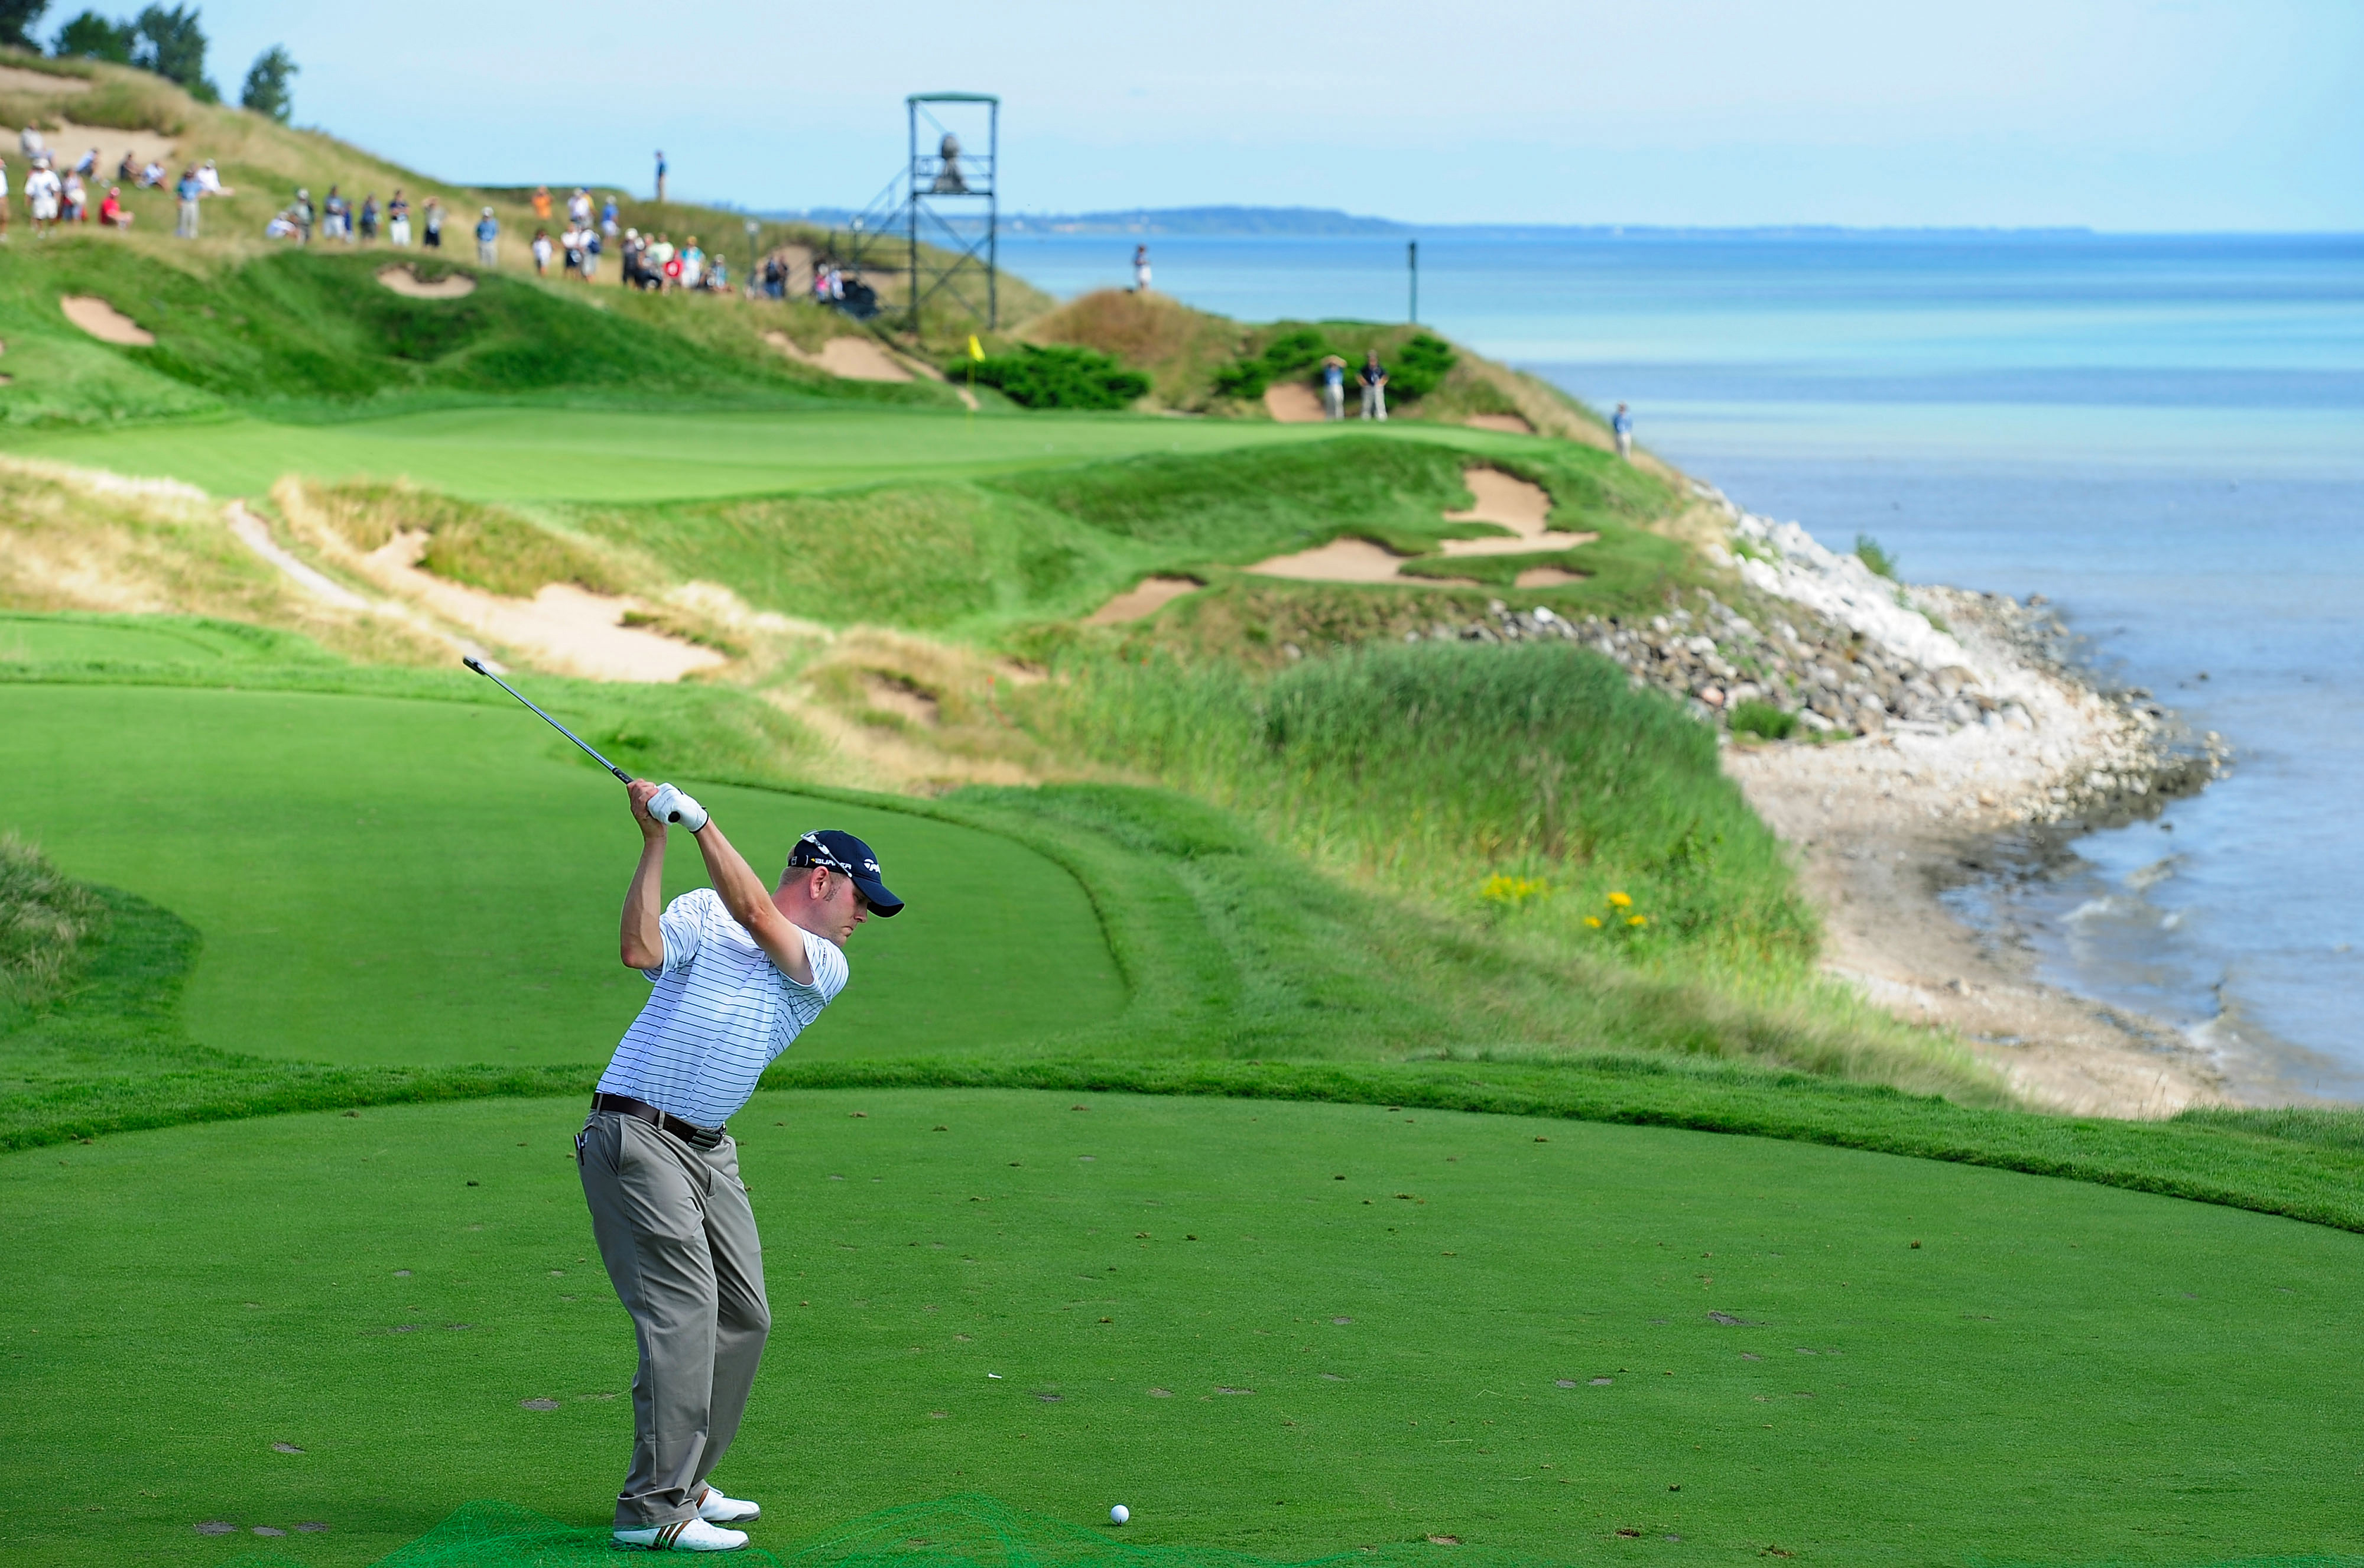 Great Lakes putts its focus on golf